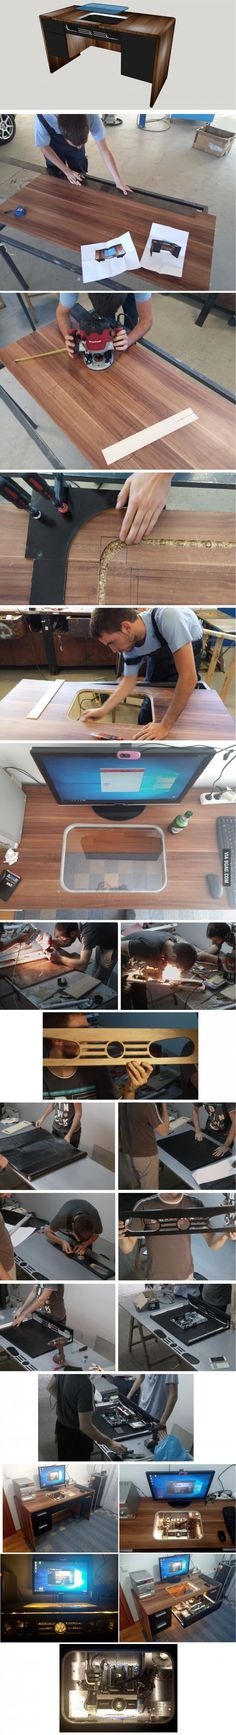 "DIY Project ""PC in Table"" (Video link in comments)"